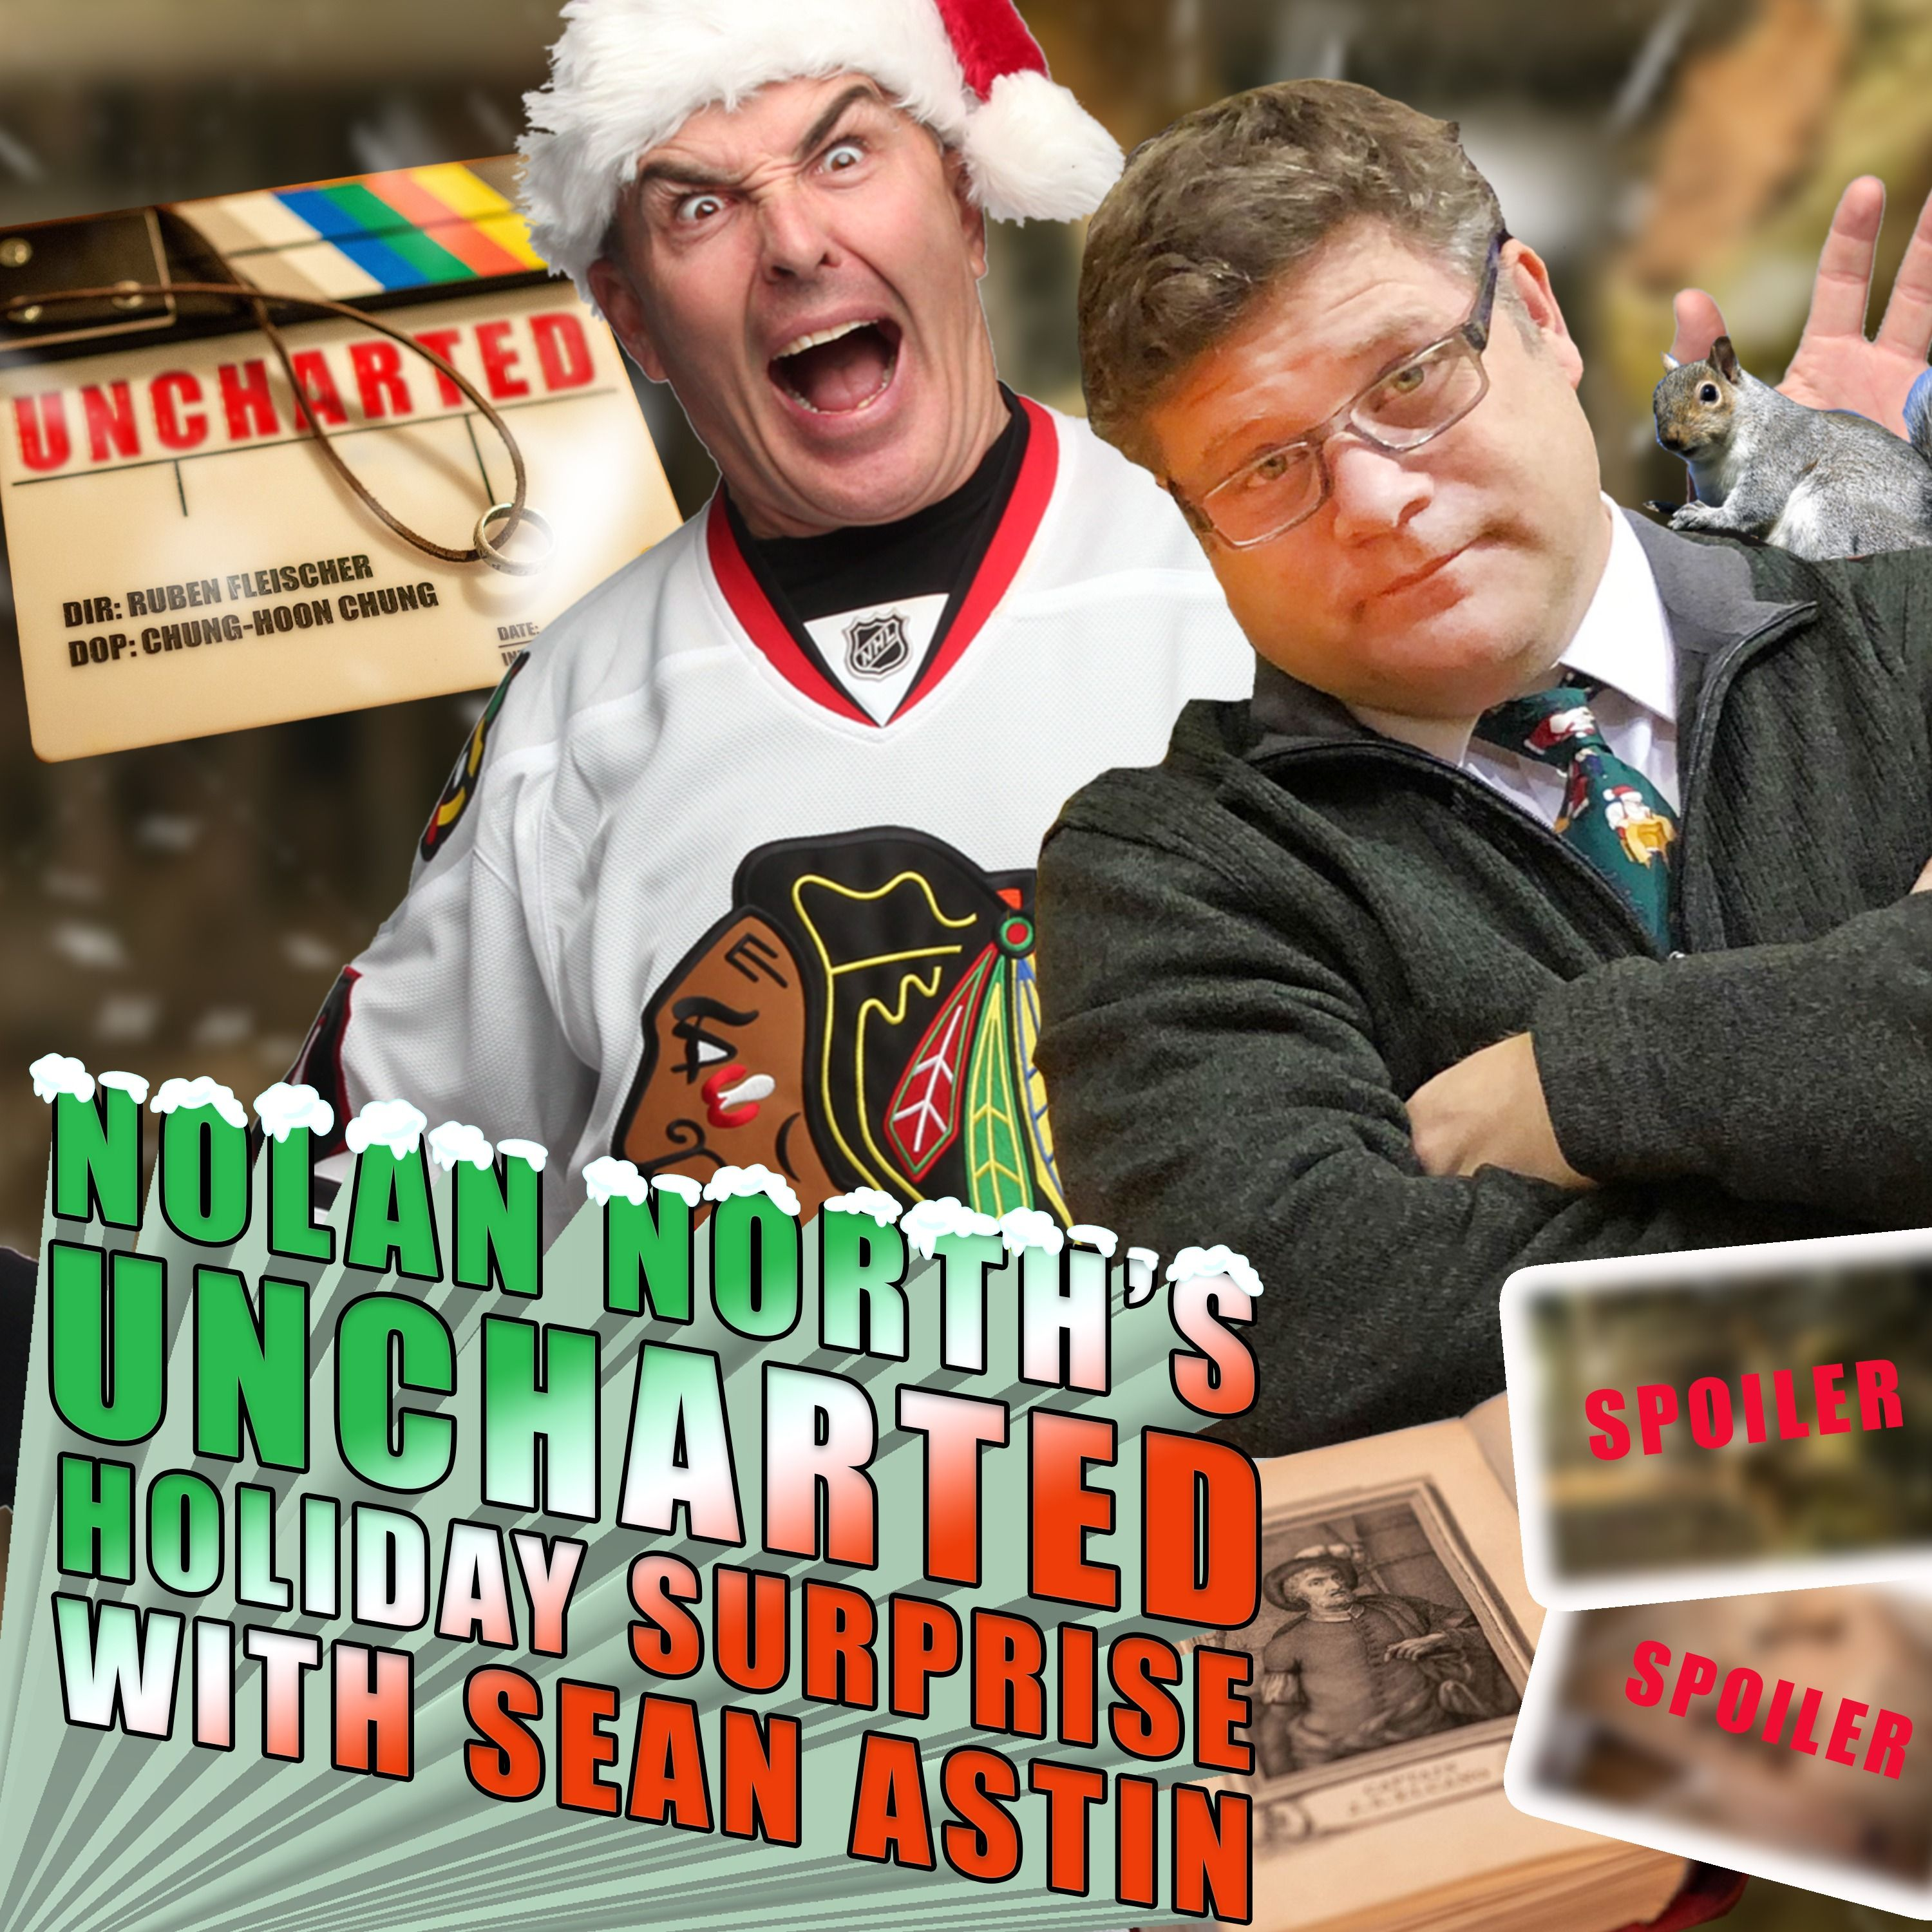 Nolan North's Uncharted Holiday Surprise With Sean Astin | An Exclusive Movie Reveal